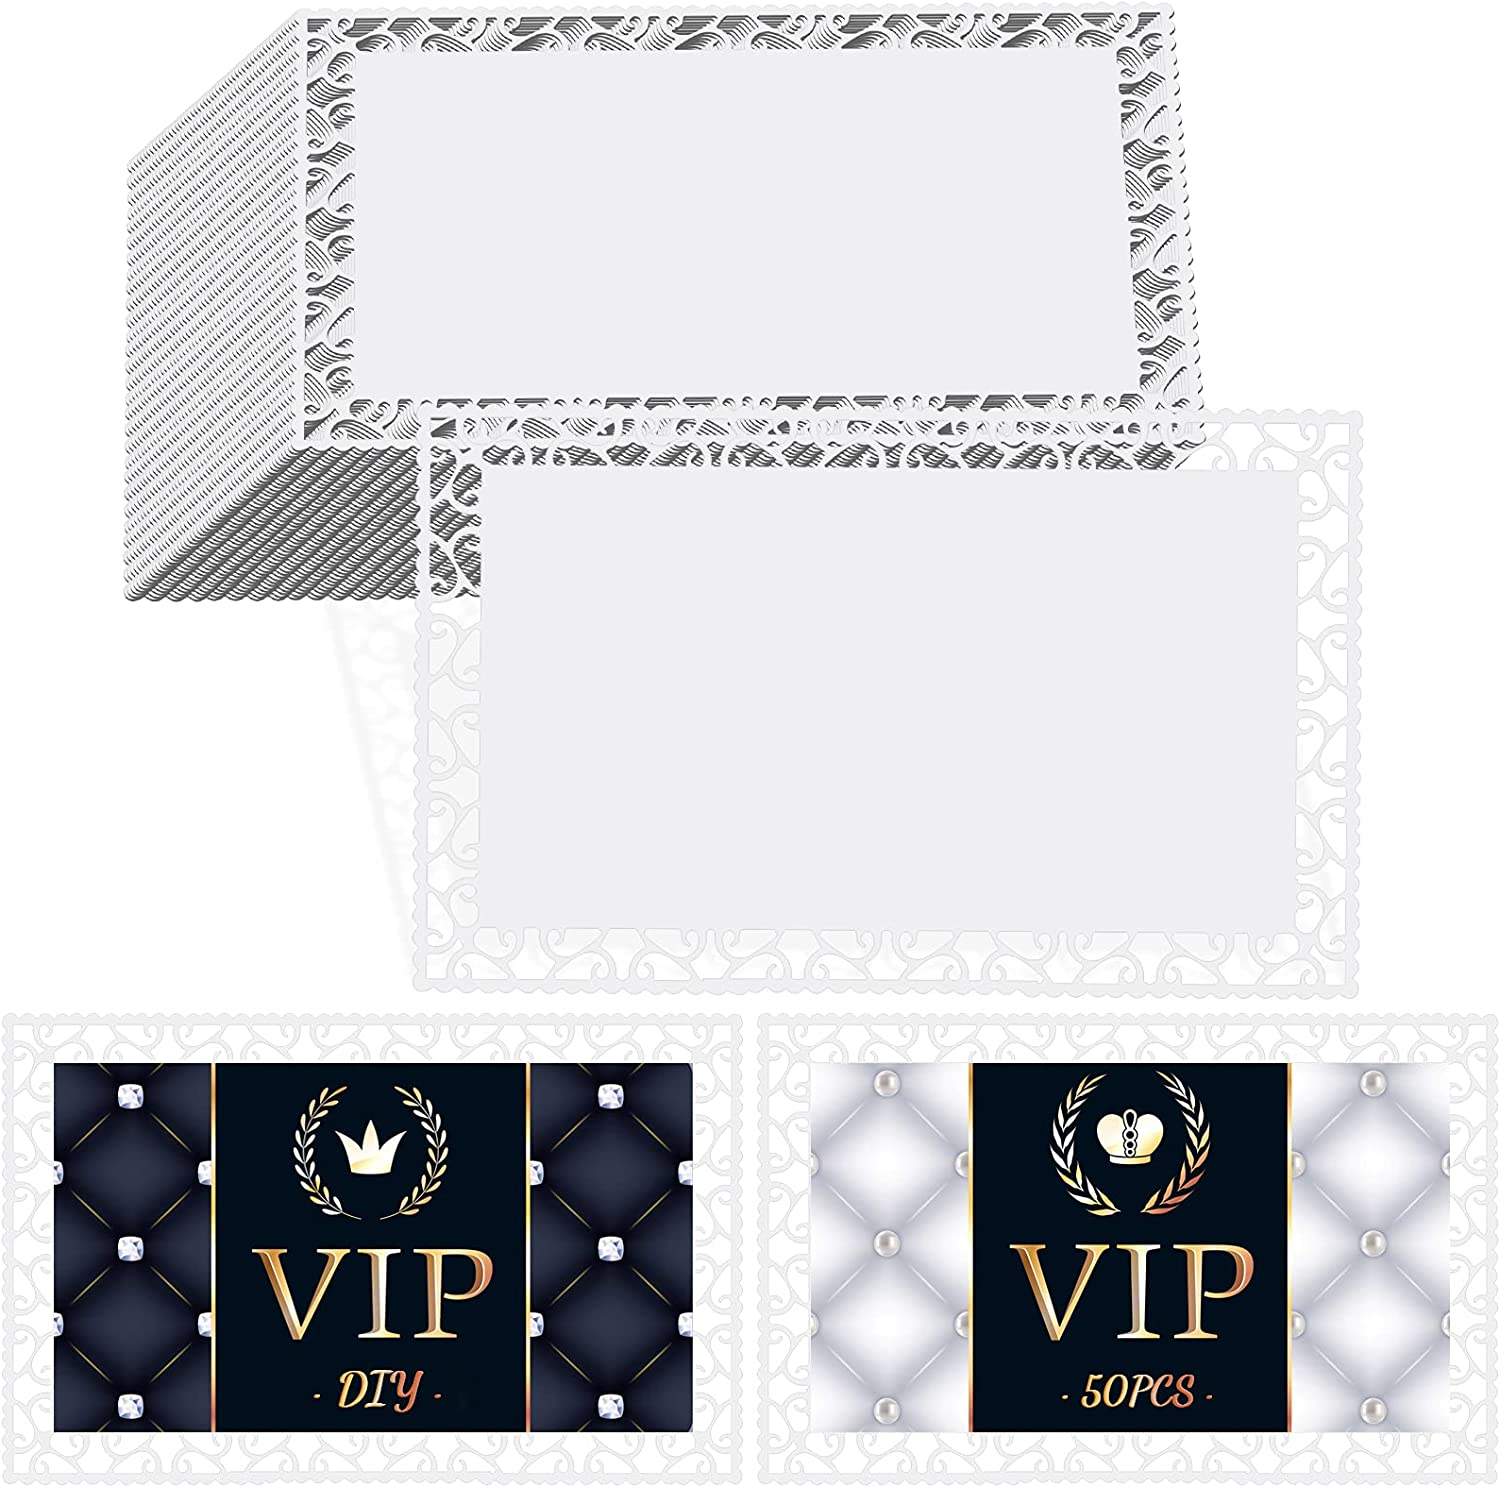 50 Pieces Sublimation Metal Super popular specialty Today's only store Business Nam Cards